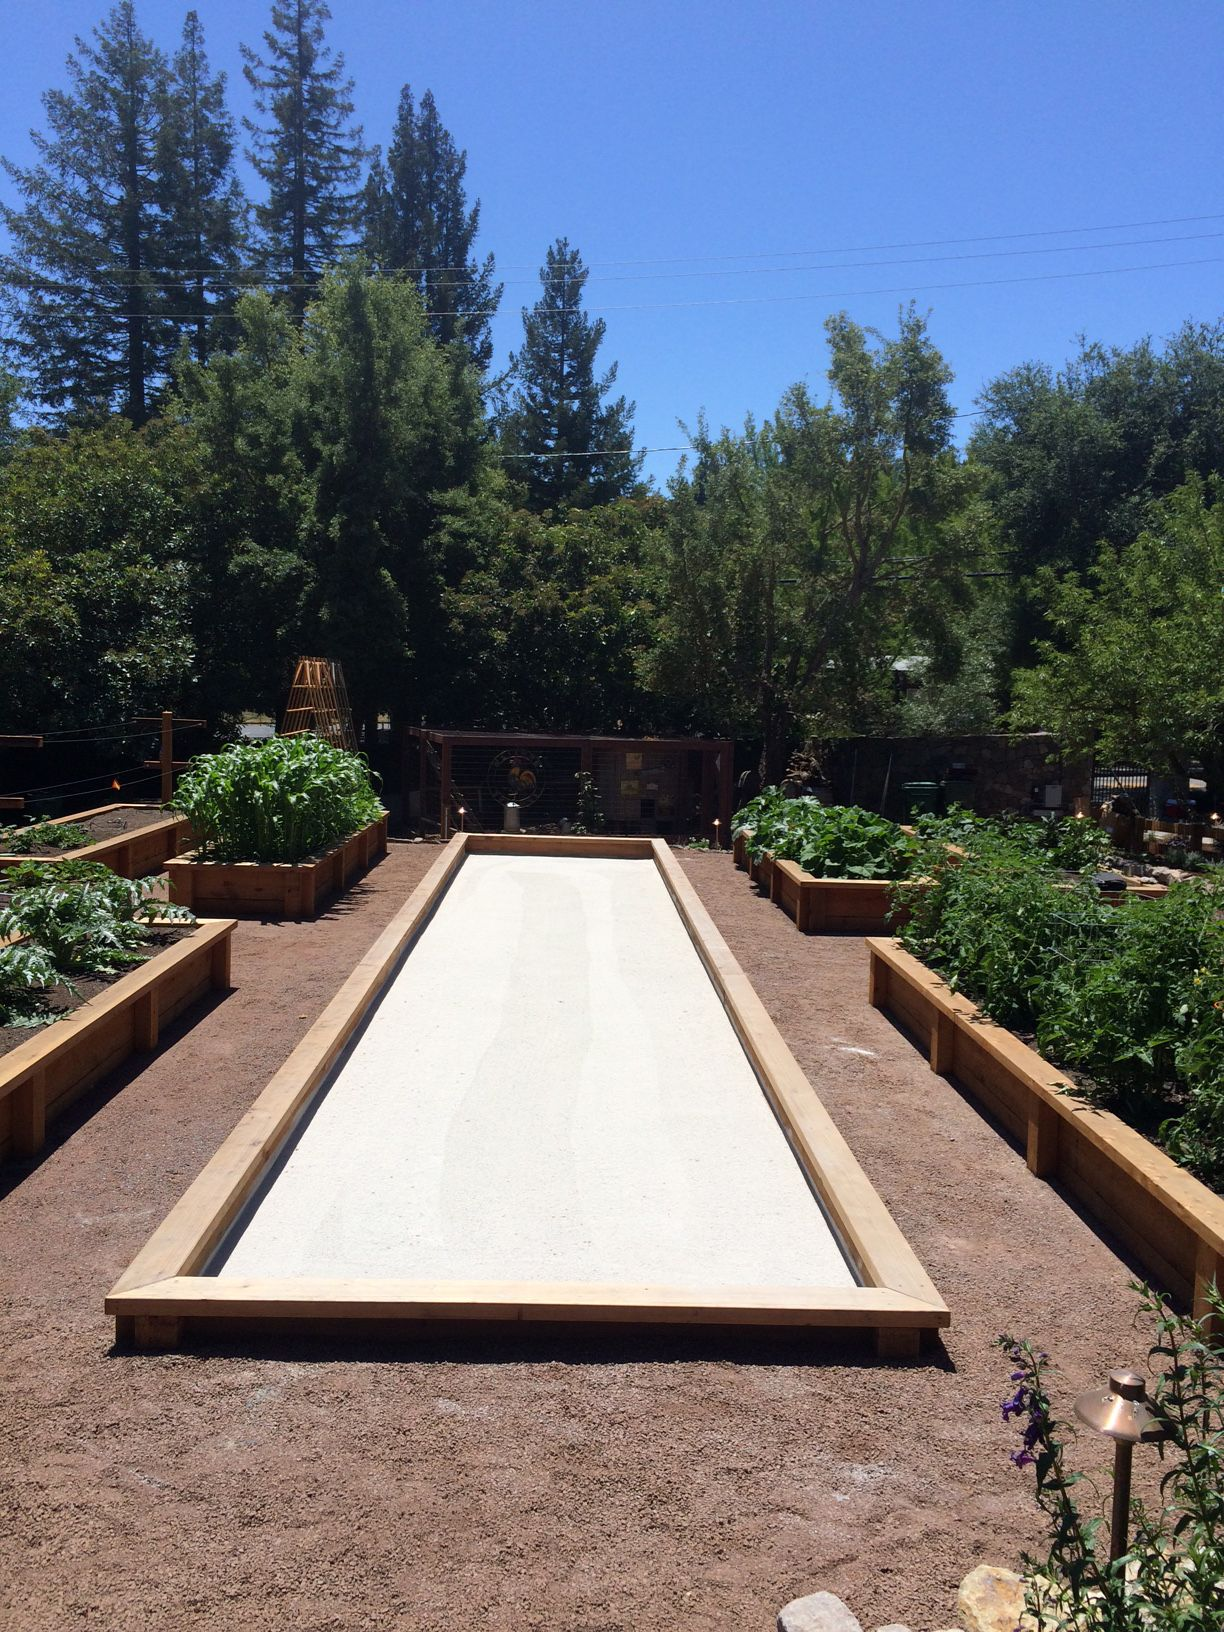 Residential Bocce Ball Courts Designed And Constructed By Bocce